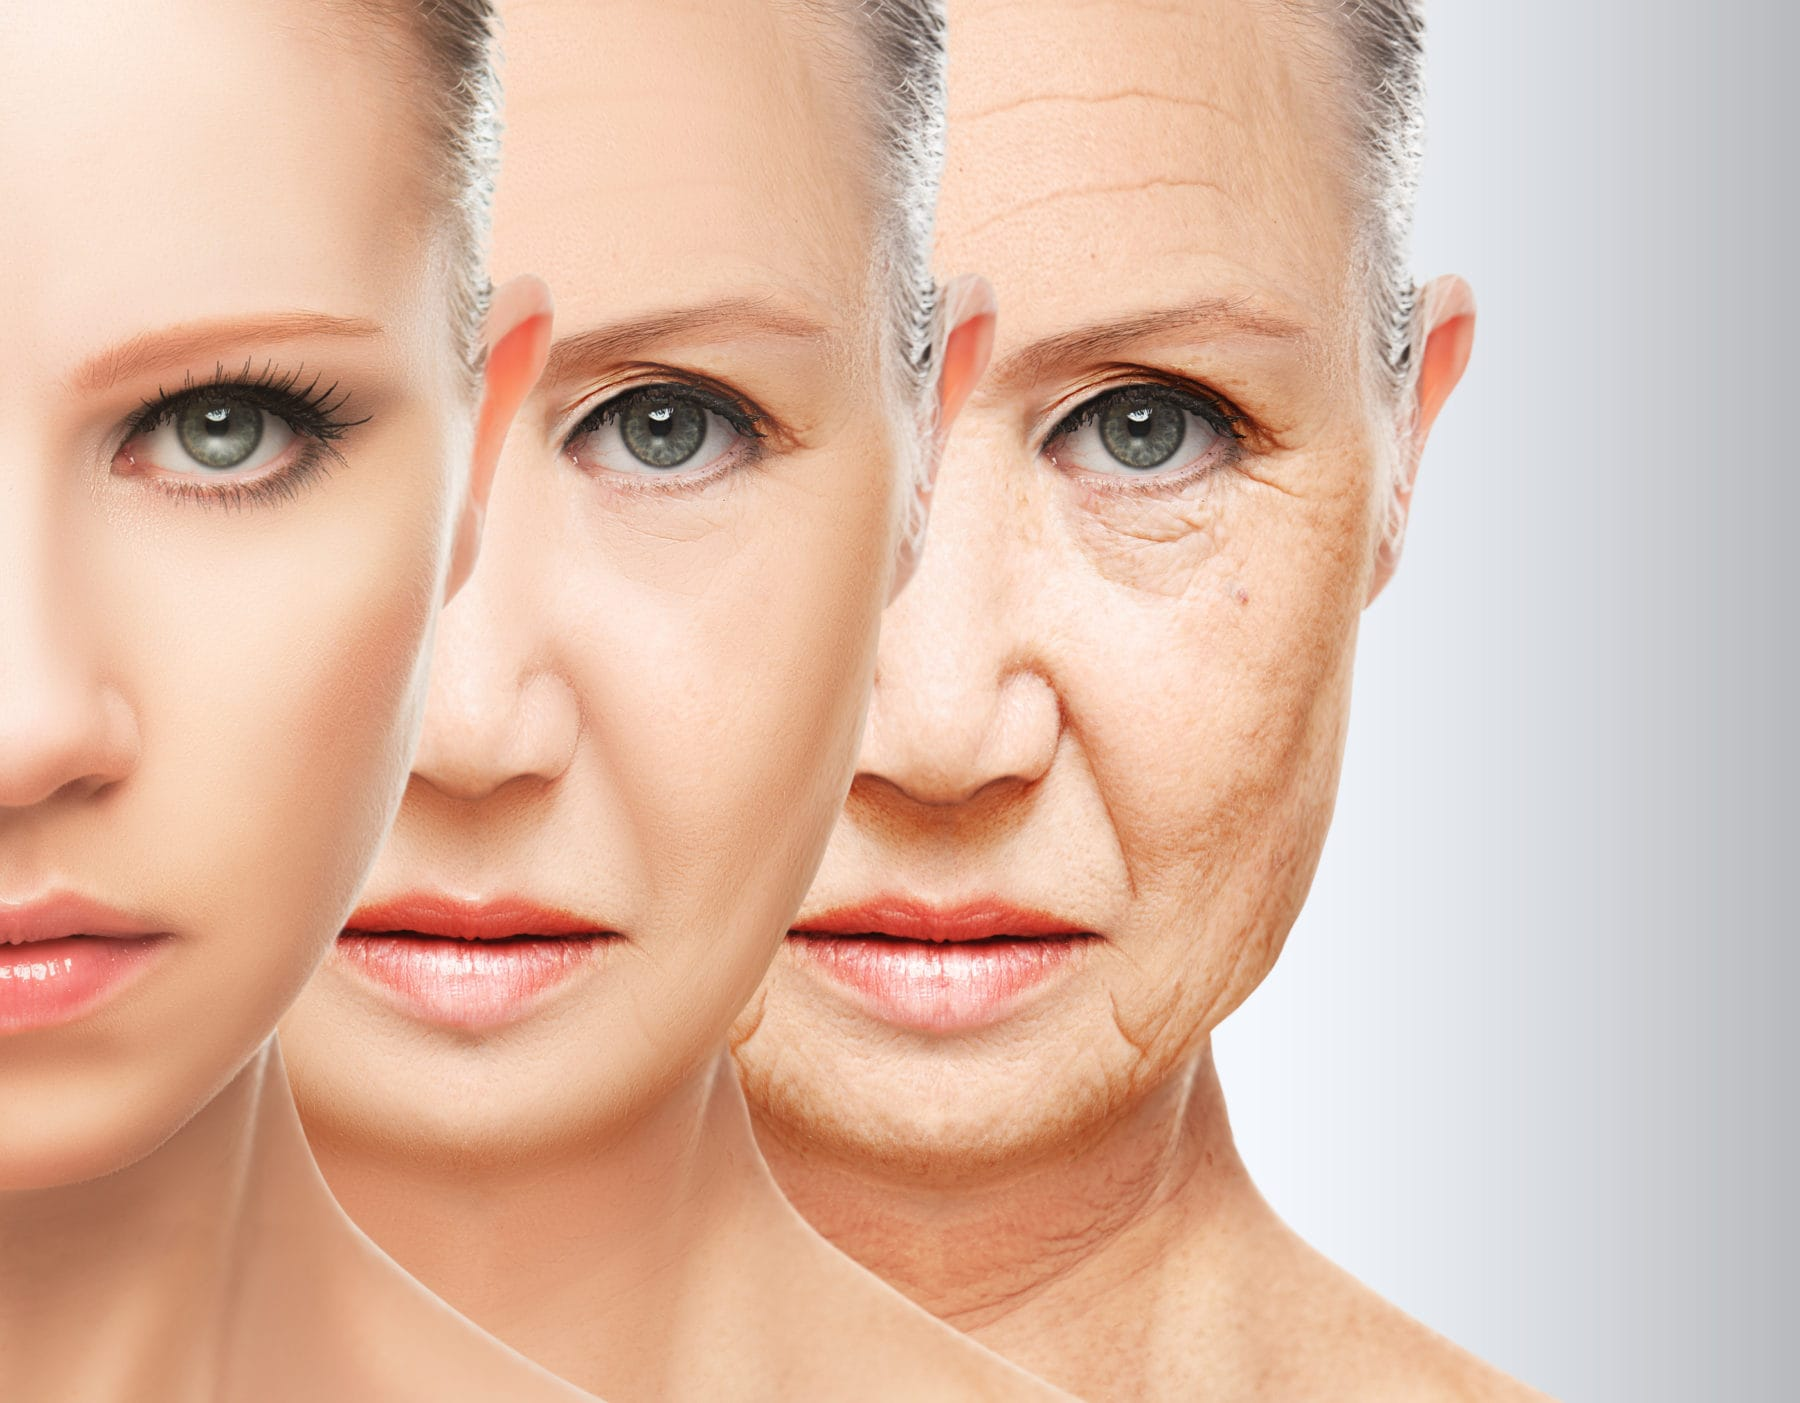 bigstock-Beauty-Concept-Skin-Aging-Ant-72208837_2